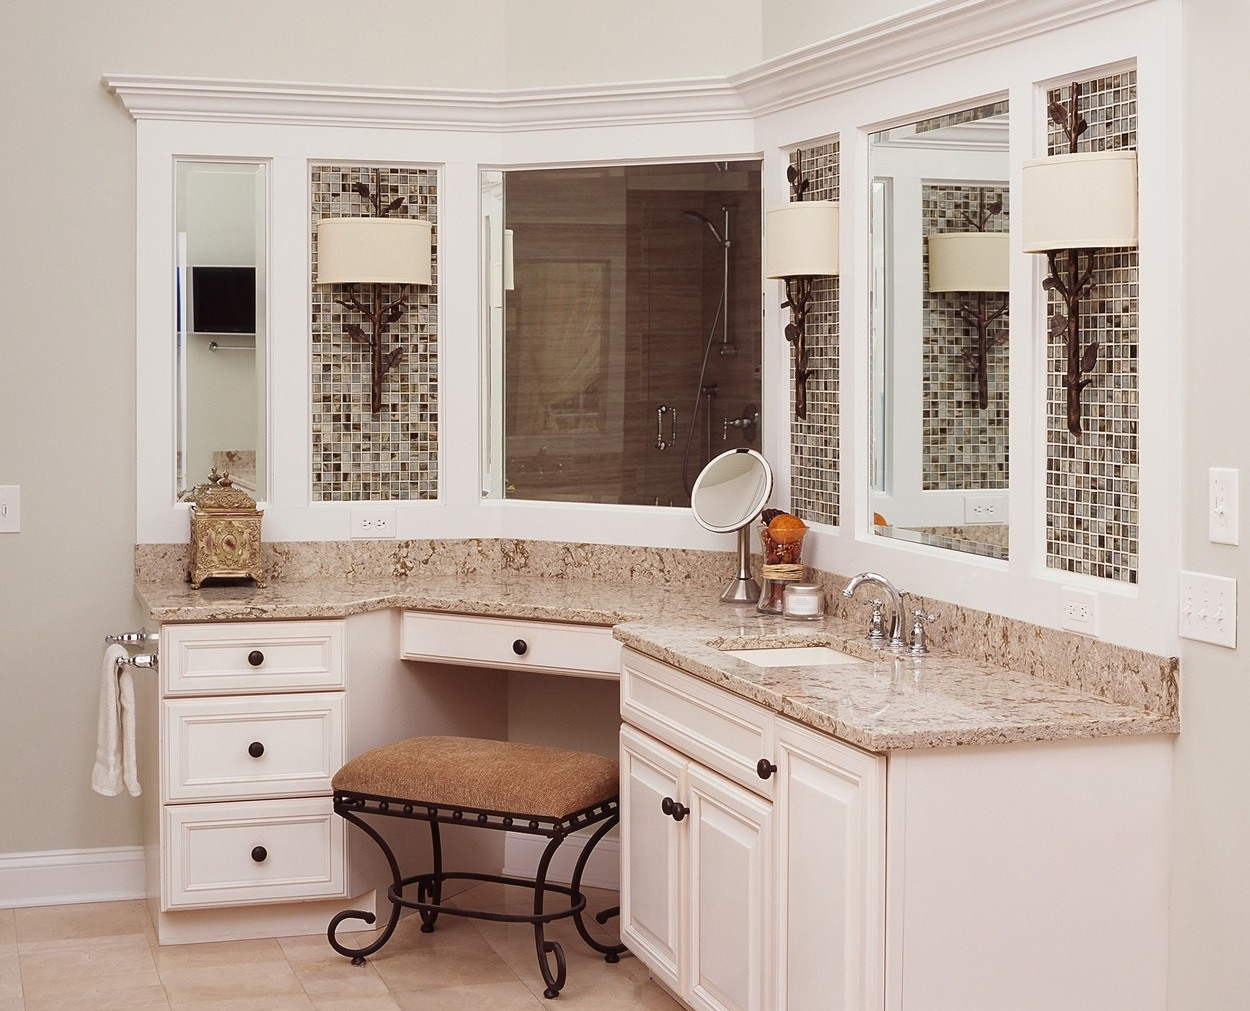 Custom cabinetry with detailing around mirrors coordinates with free standing tub details.